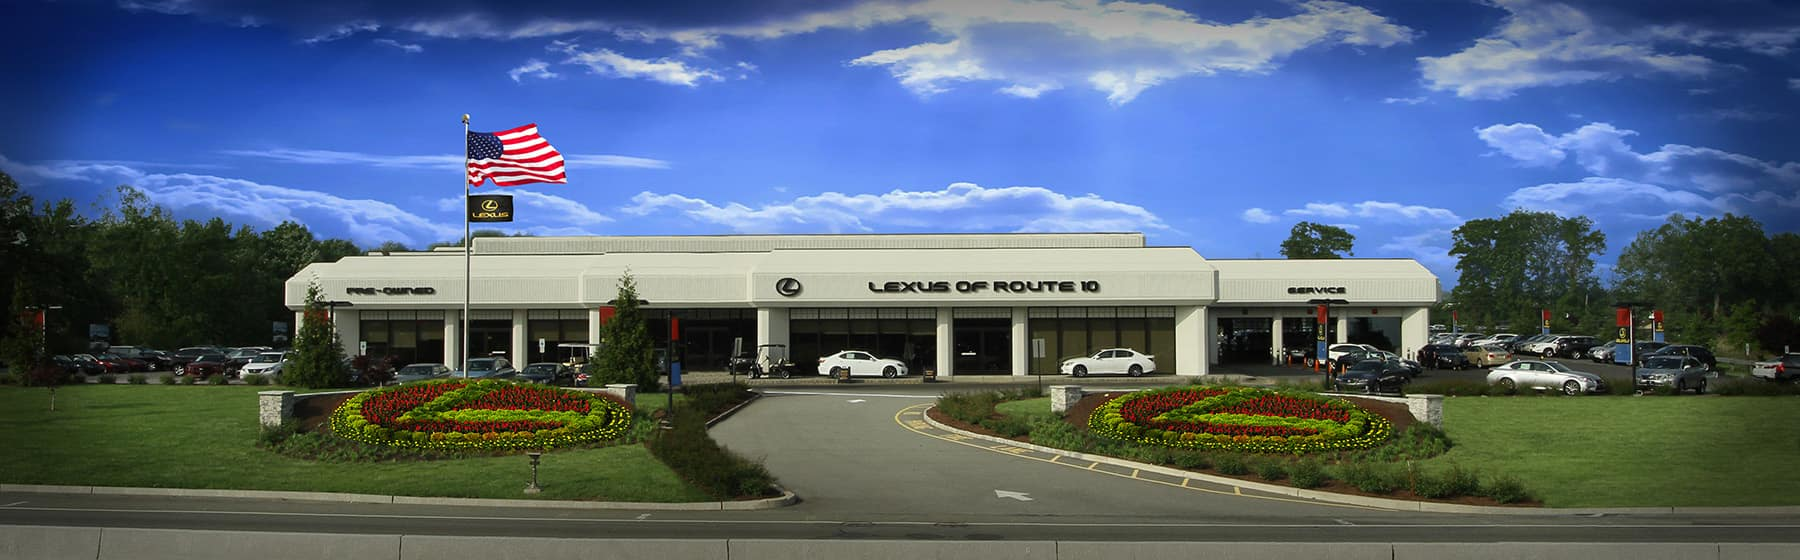 LesusRoute10 - Hero Image - Dealership